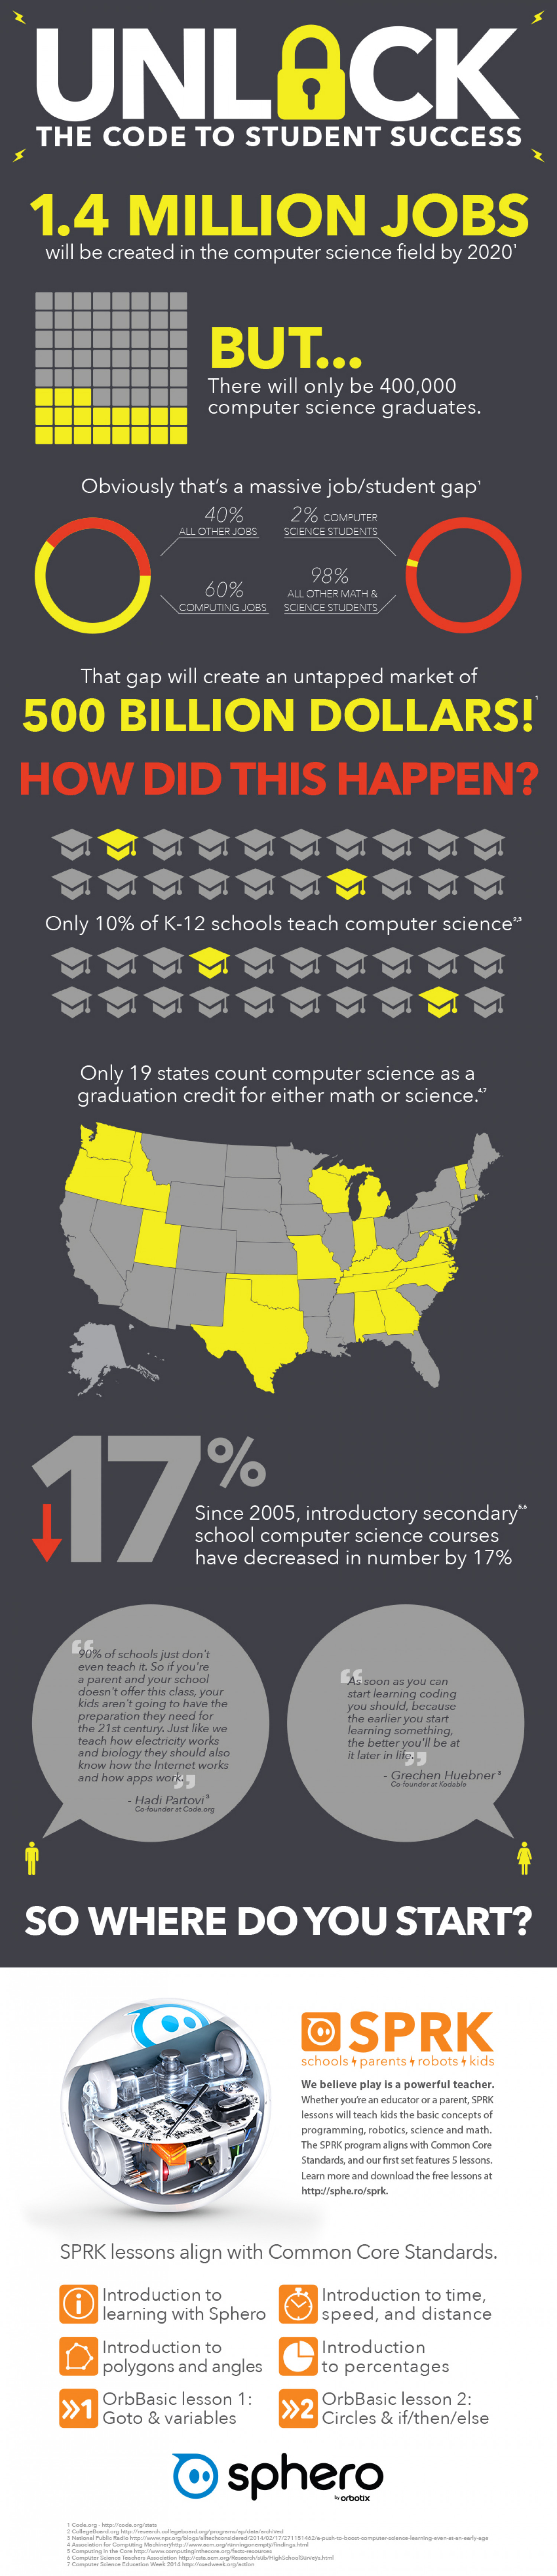 Unlock the Code to Student Success Infographic